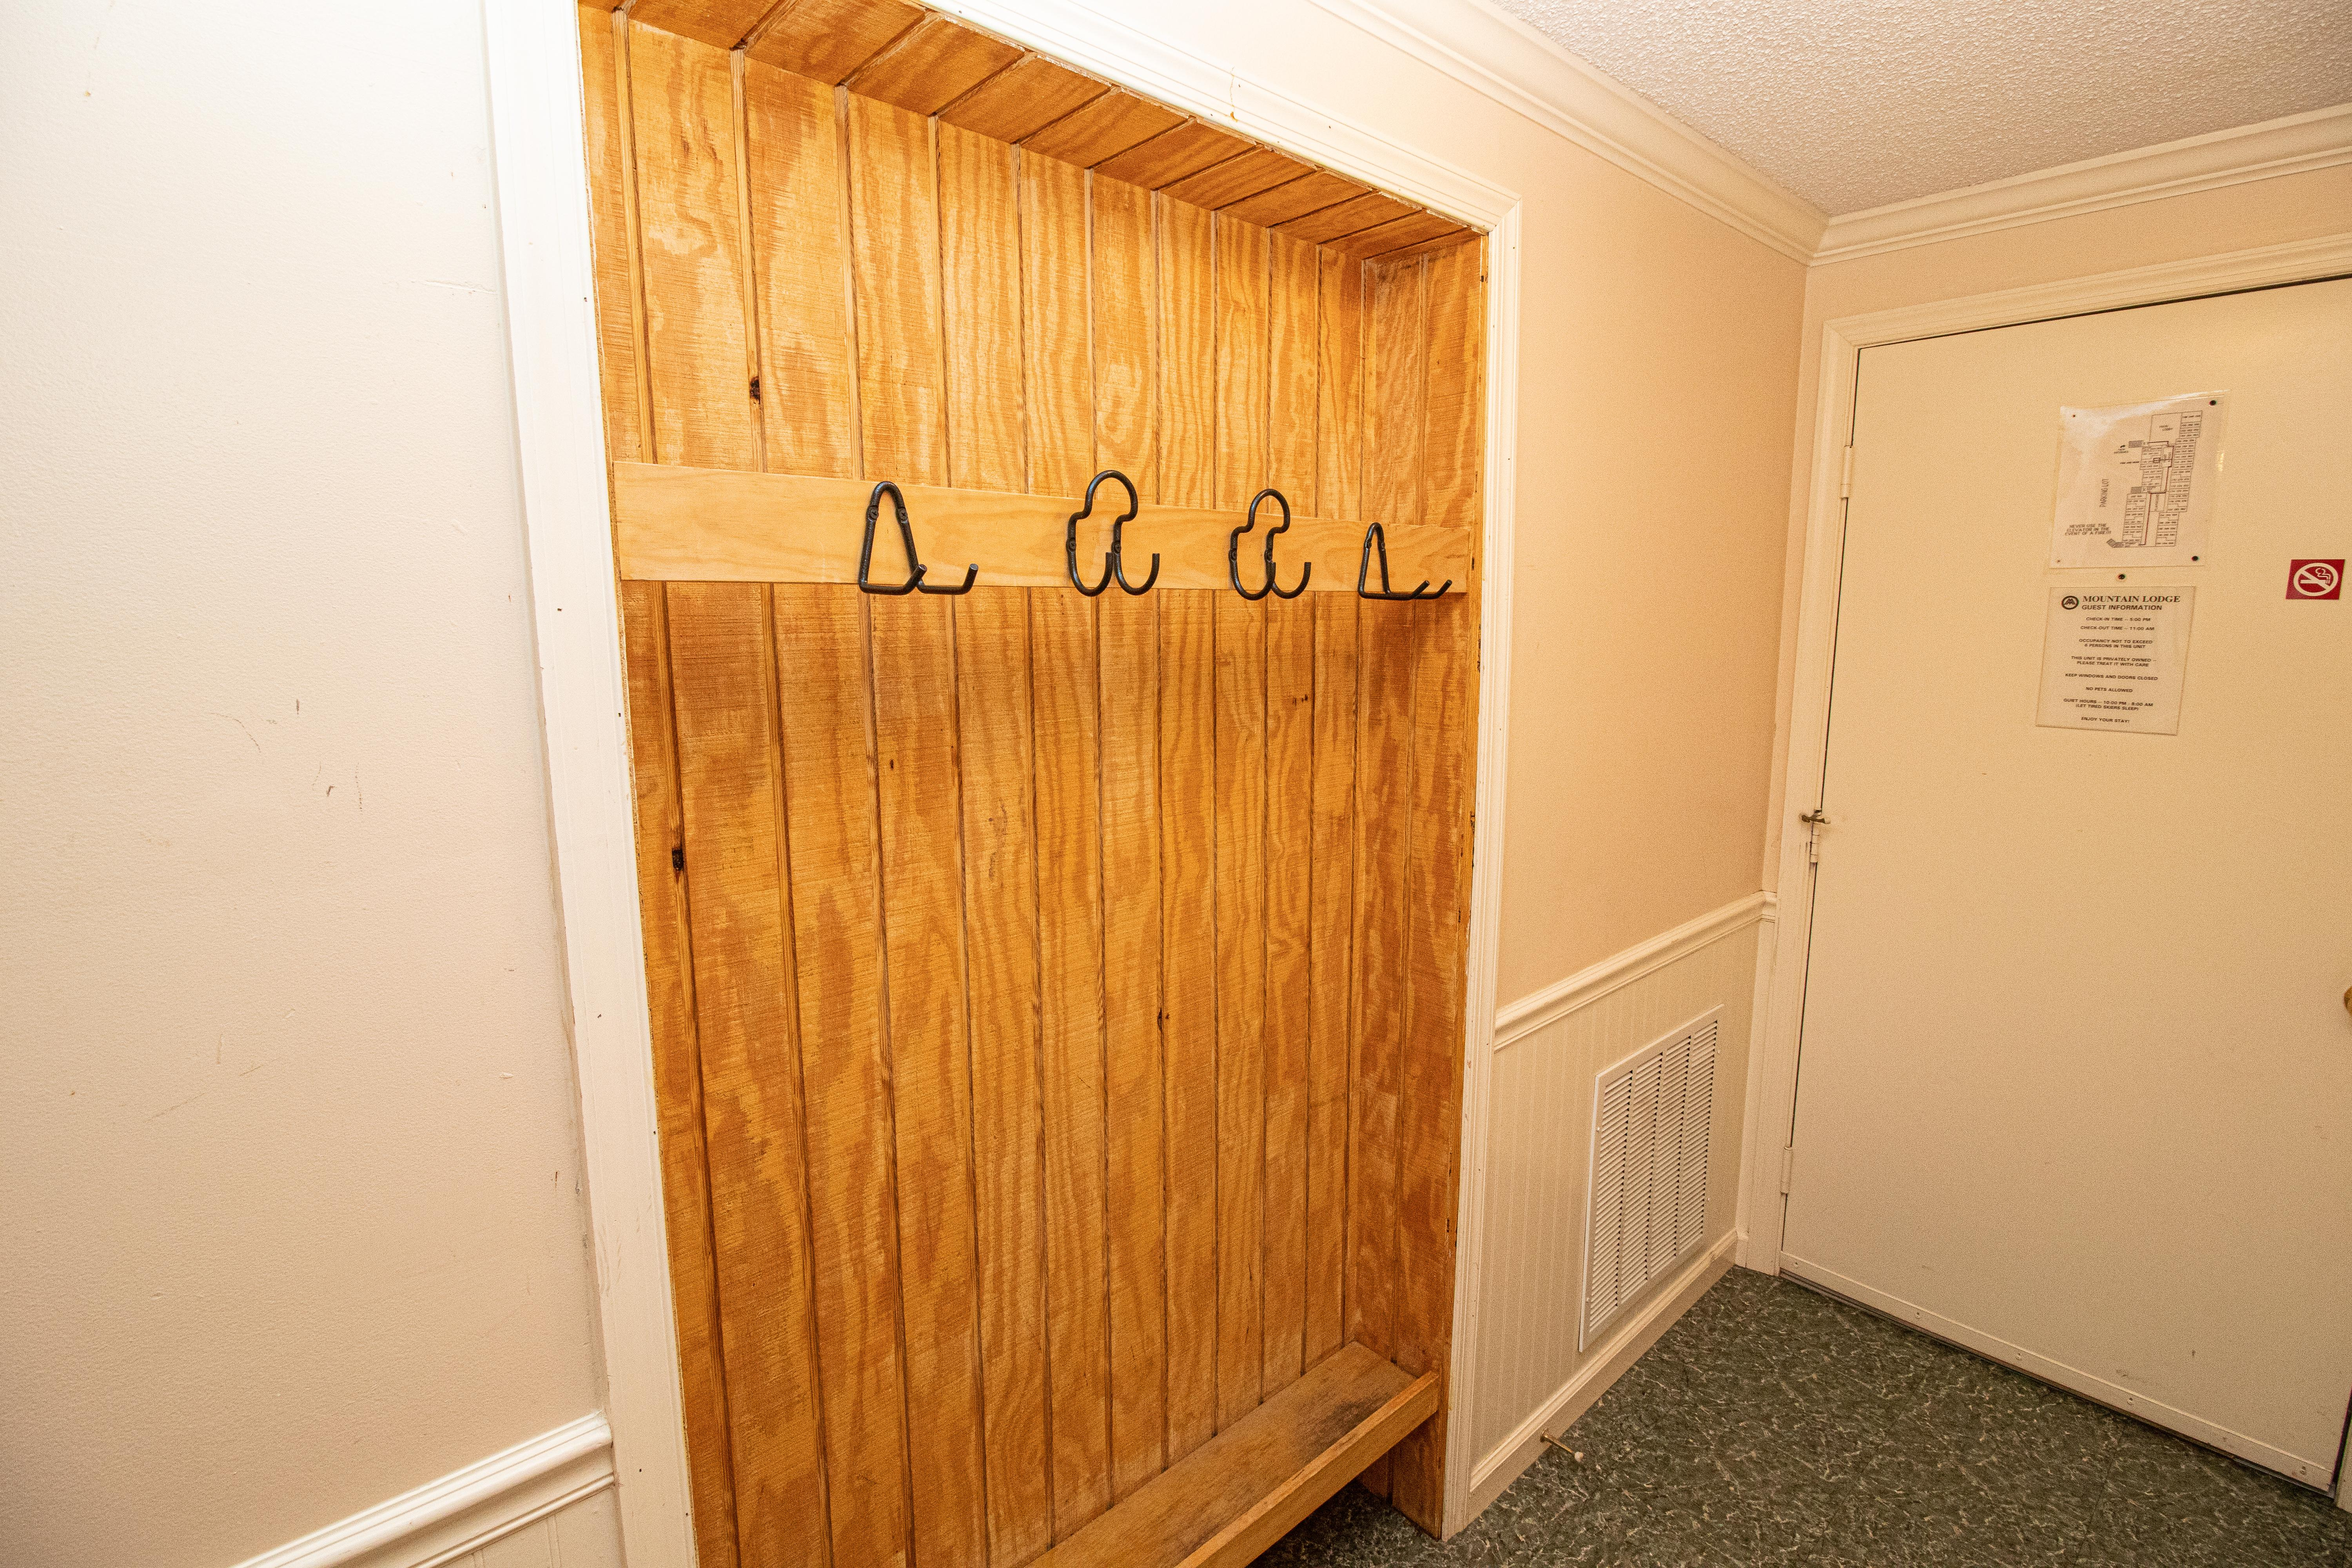 Recessed ski rack in hallway - store your gear securely inside the unit!